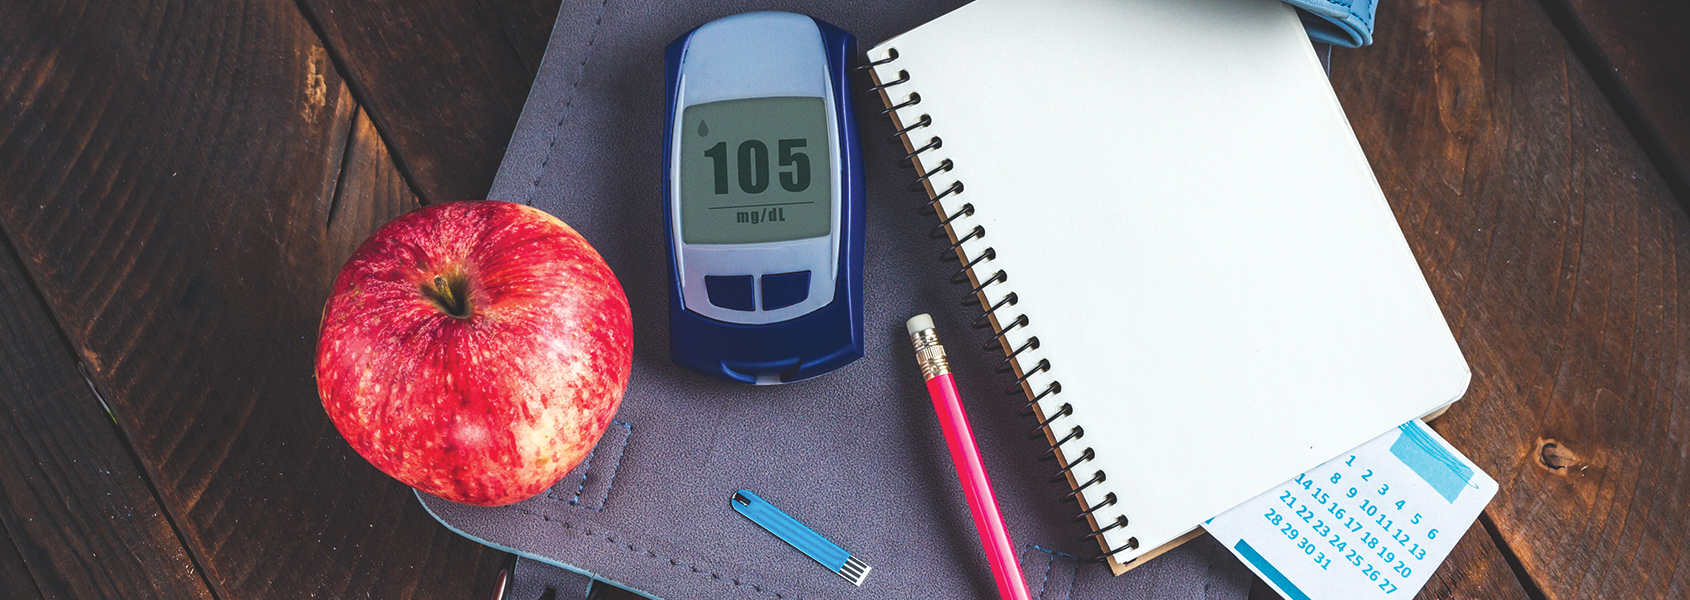 Diabetes management gear sitting on a table next to an apple.